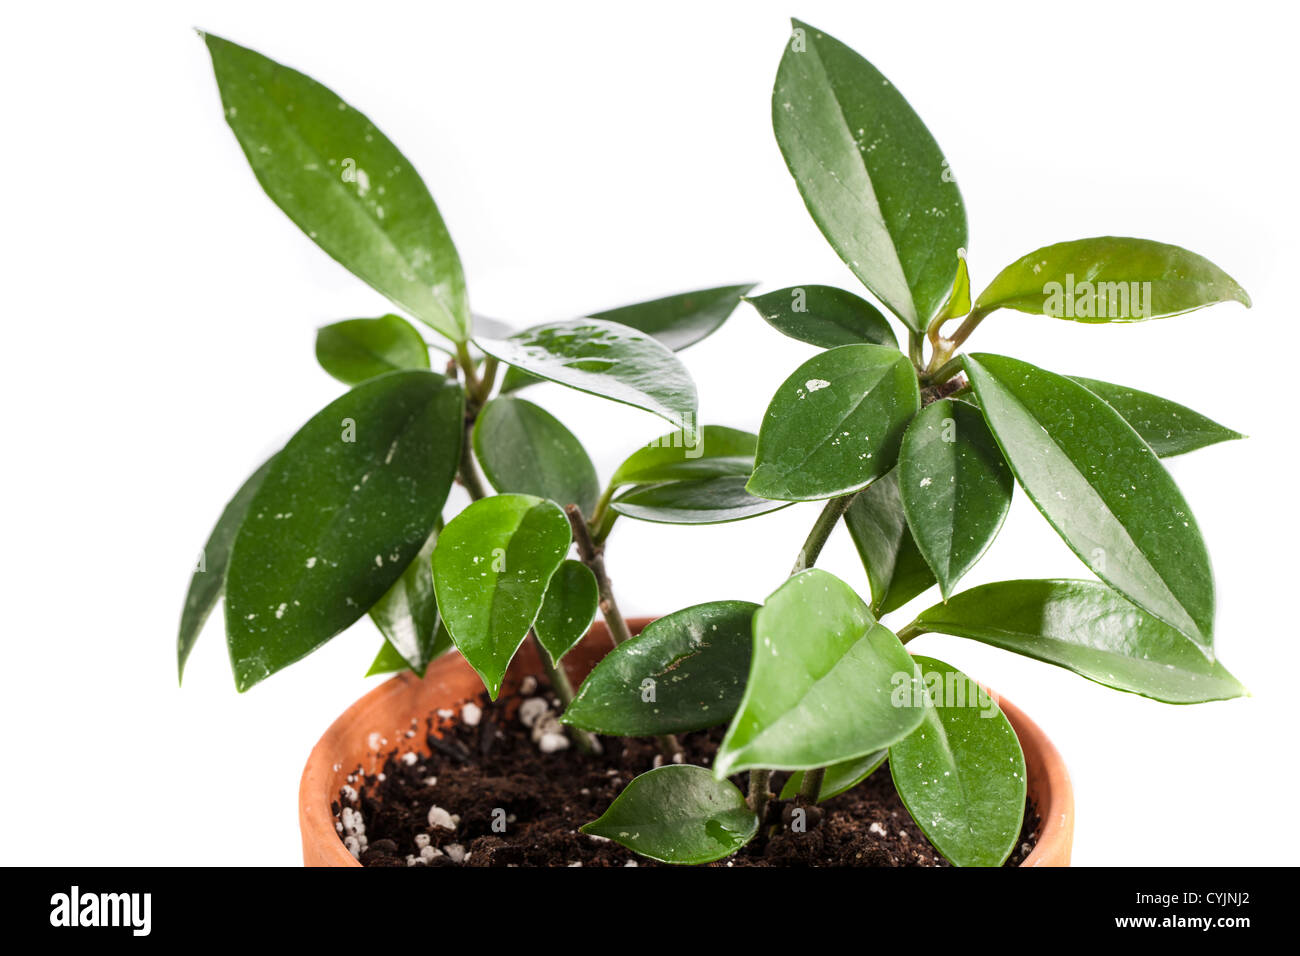 Hoya Carnosa Cuttings In A Clay Pot On White Background Stock Photo